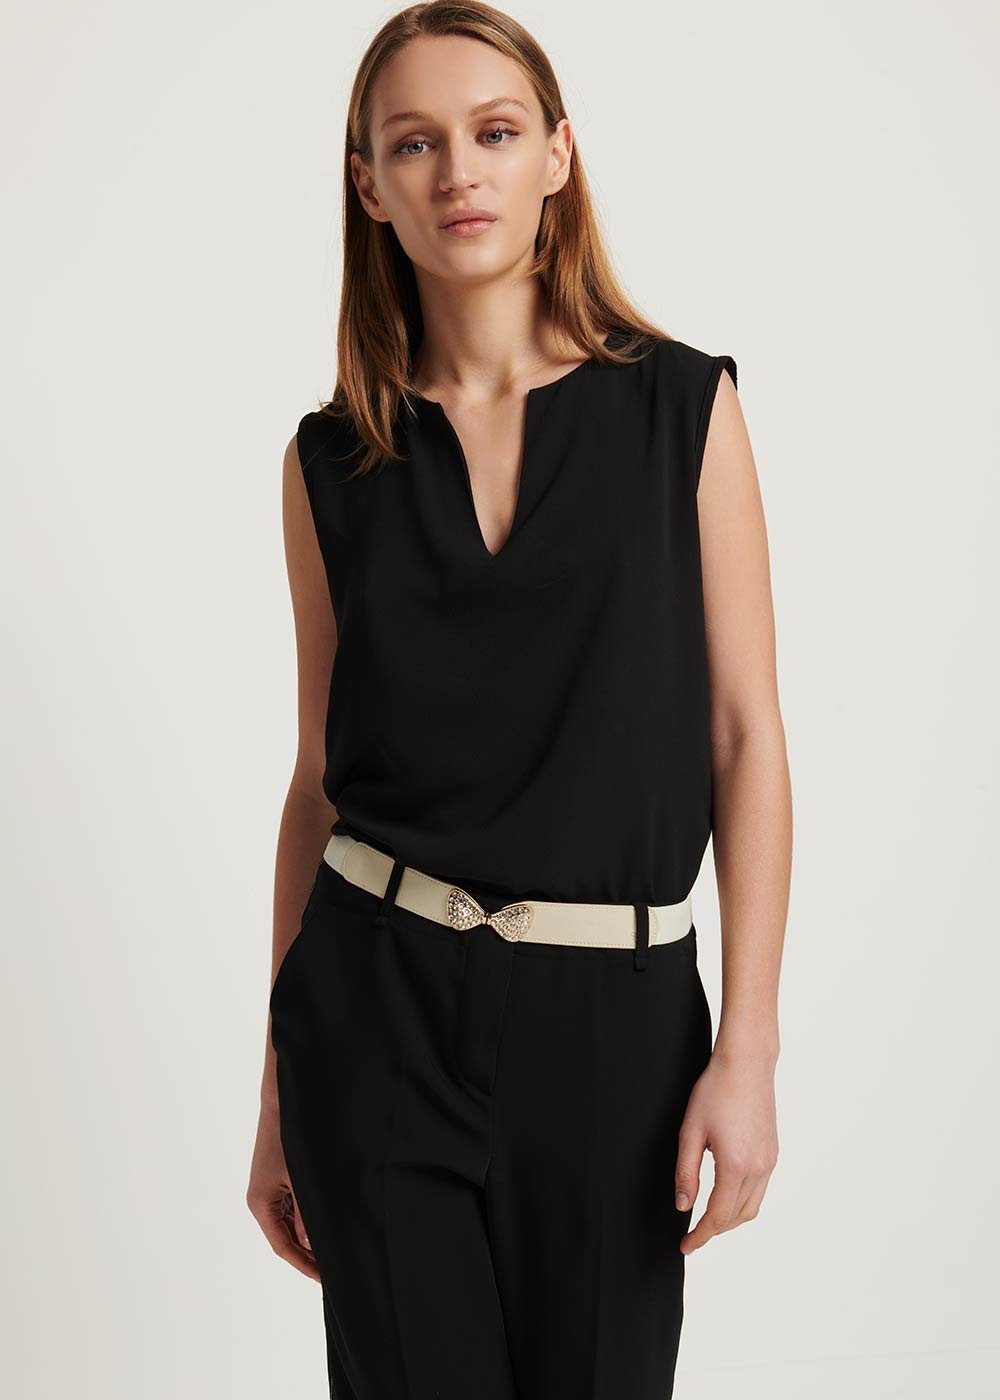 Theodor sleeveless basic top - Black - Woman